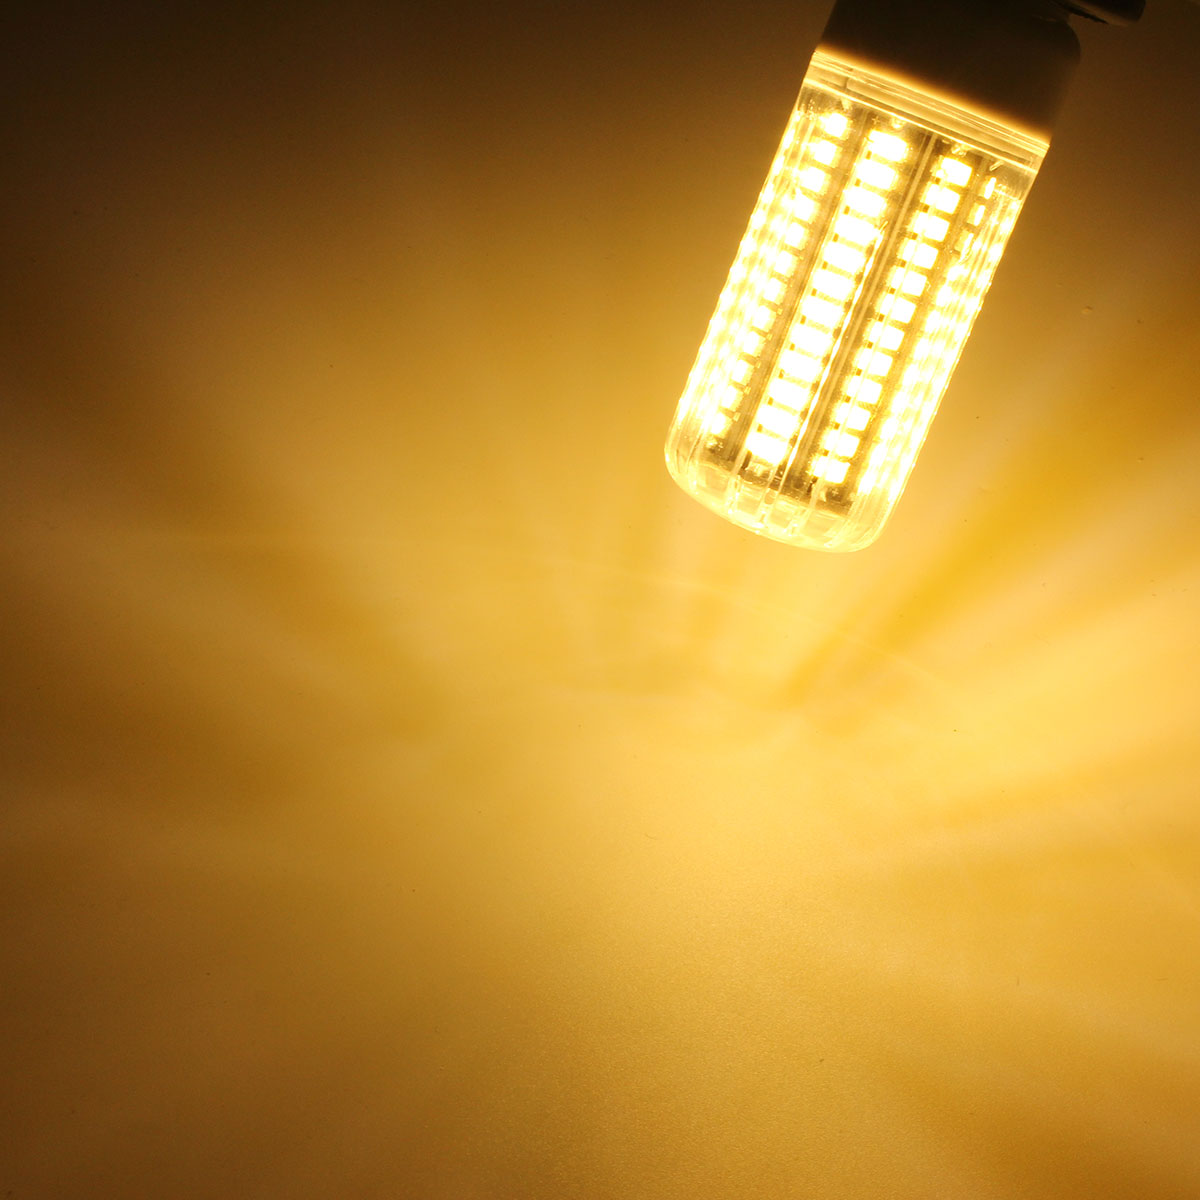 E14 E12 B22 GU10 G9 E27 LED 9W 105 SMD 5730 Warm White White Fire Cover Corn LED Bulb Light AC220V